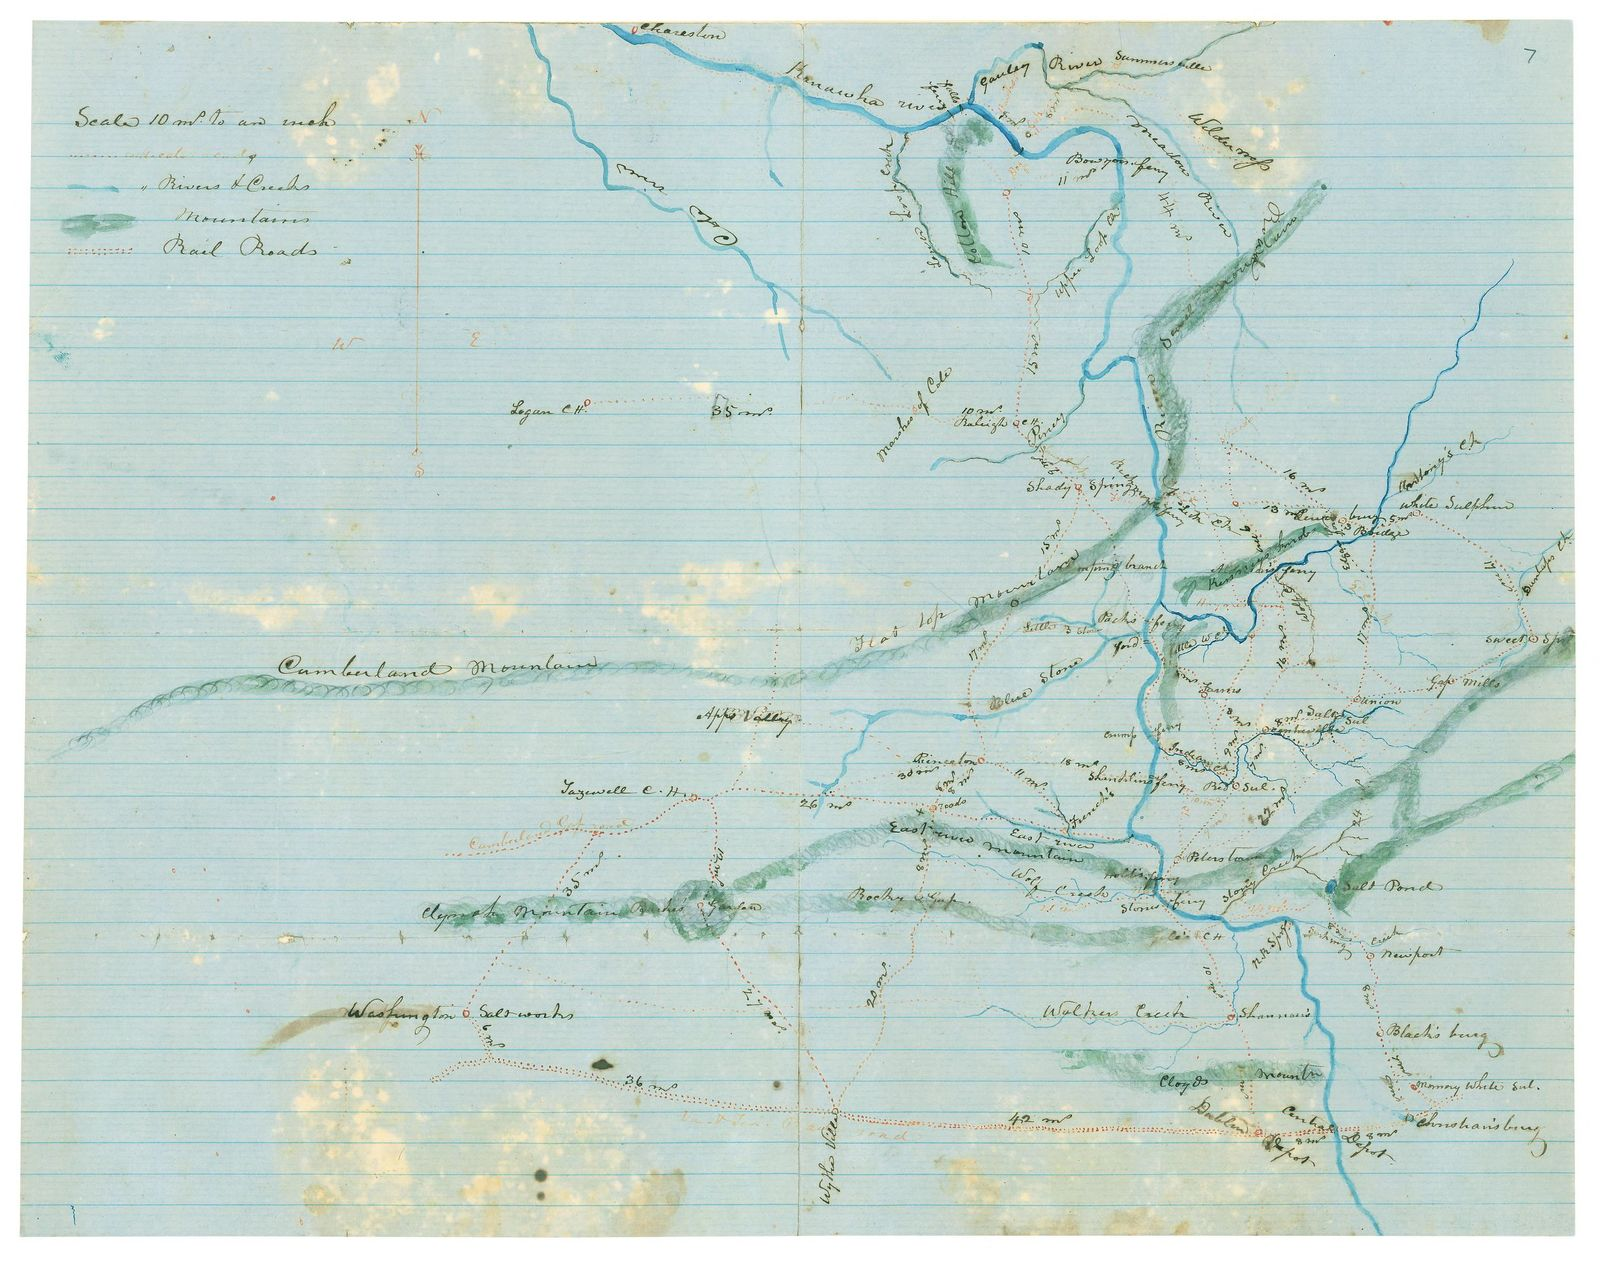 [Map of Kanawha, Boone, Logan, Wyoming, McDowell, Mercer, Raleigh, Fayette, Nicholas, Greenbrier, Summers and Monroe Counties, West Va., and Tazewell, Smyth, Washington, Bland, Giles, Craig, Montgomery, Pulaski and Wythe Counties, Va. /